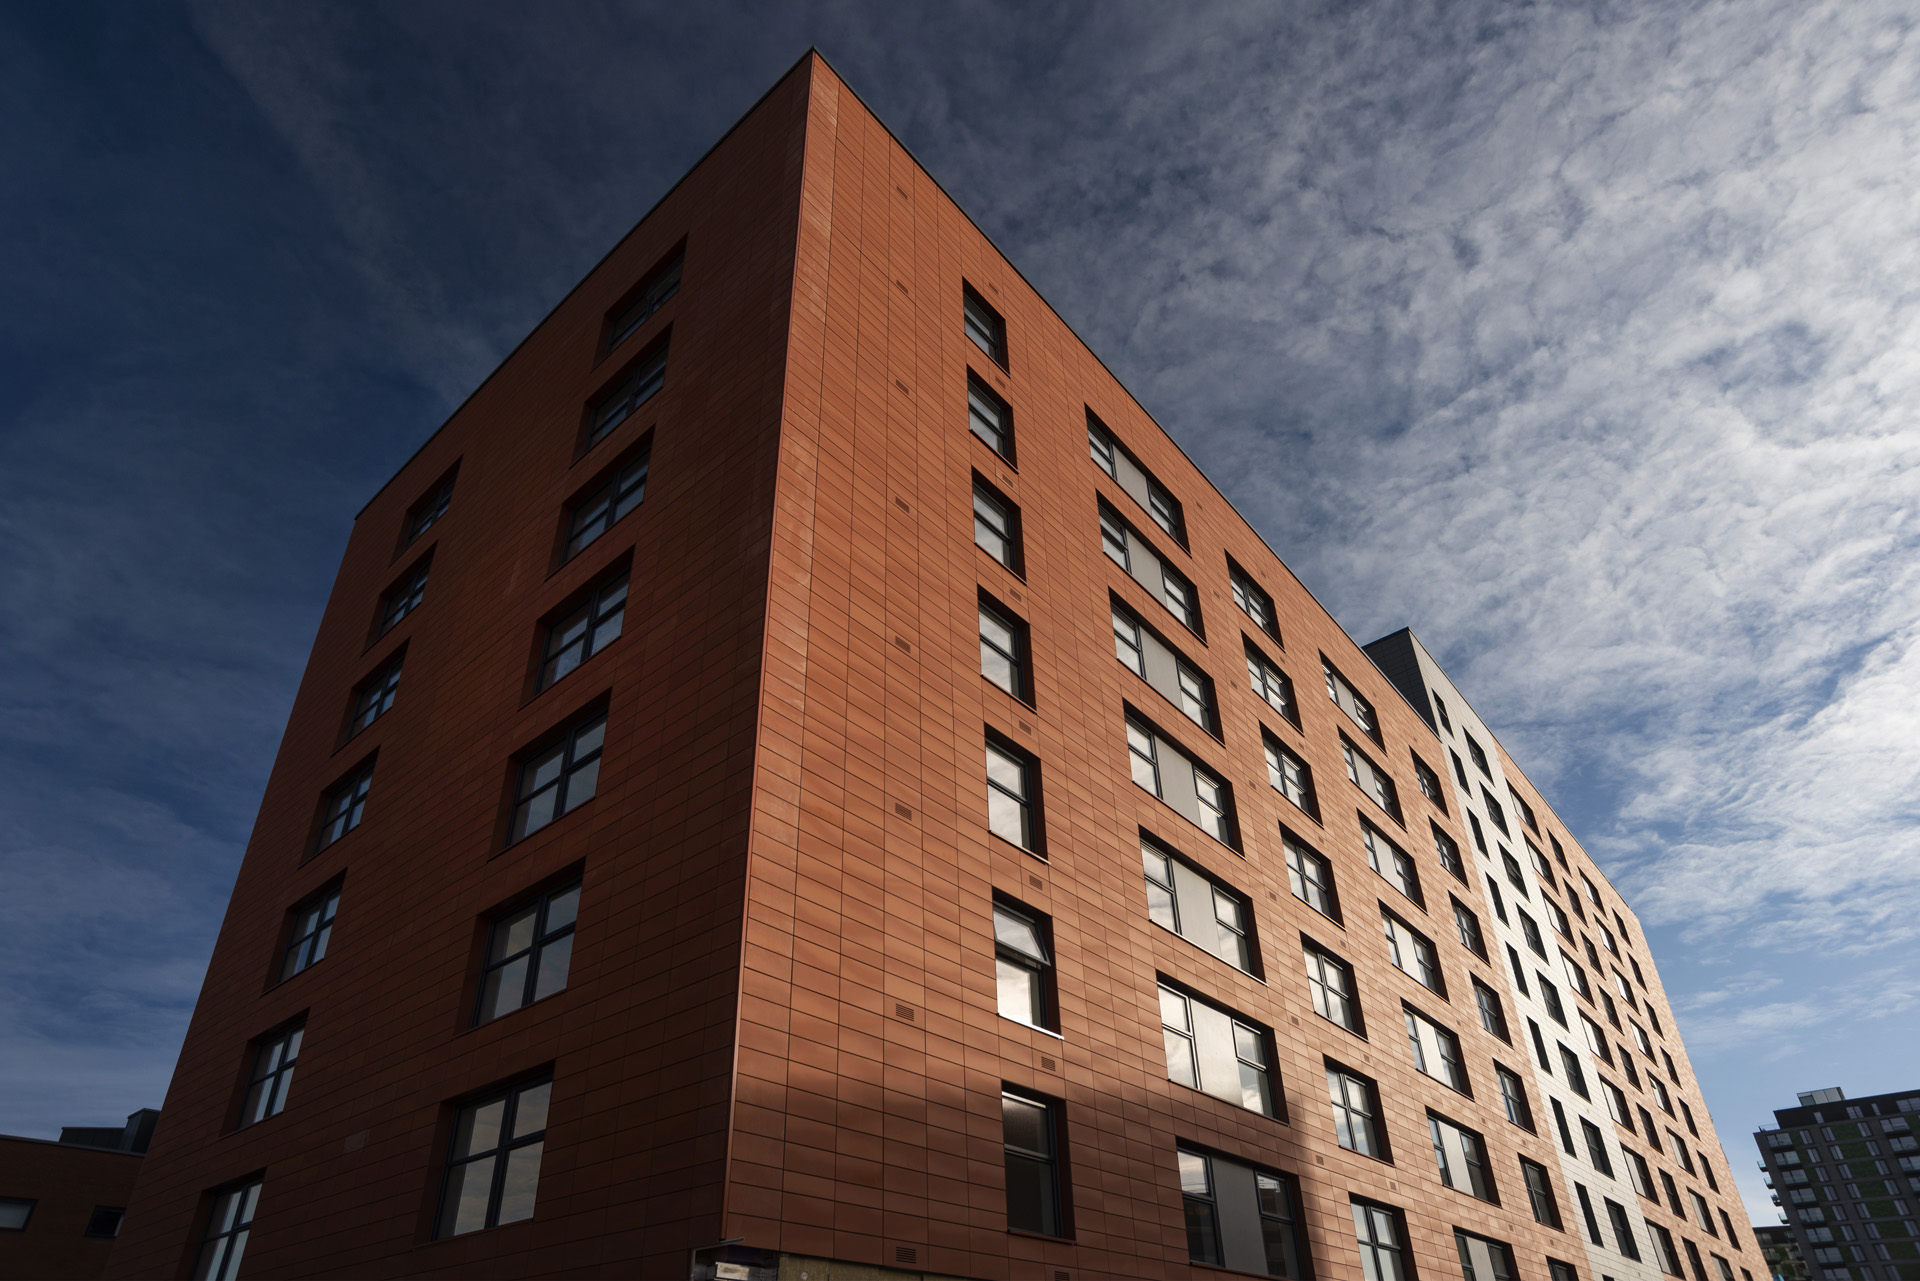 Salford apartment block named in honour of revered minister and writer